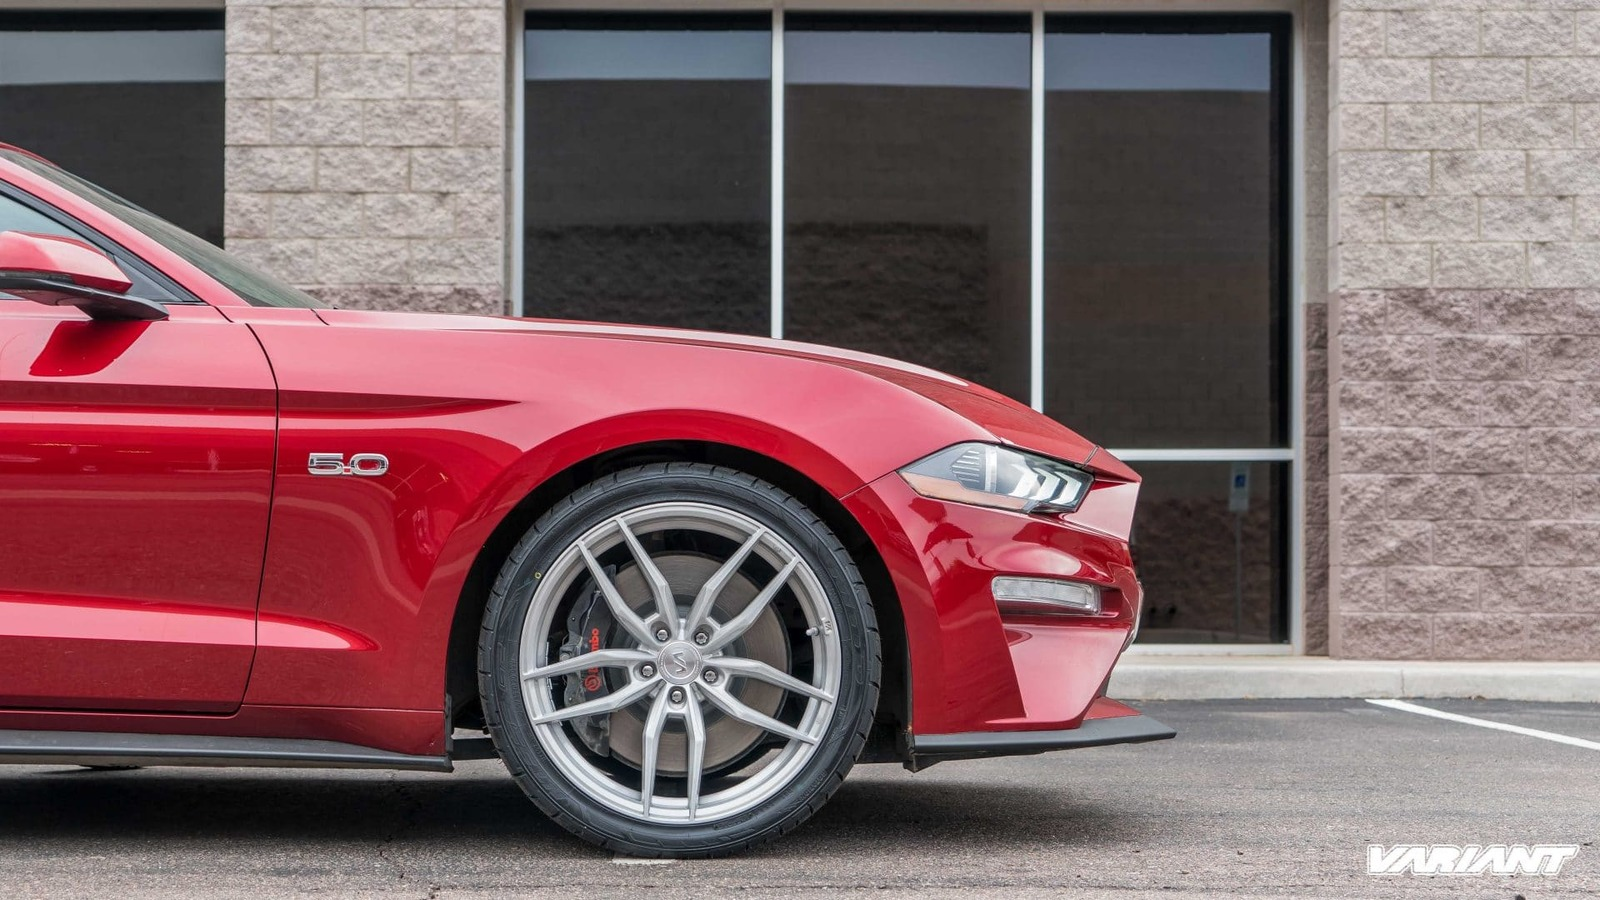 RUBY-RED-FORD-MUSTANG-GTPP-S550-KRYPTON-BRUSHED-WITH-CLEAR-CONCAVE-COLD-FORGED-WHEELS.jpg